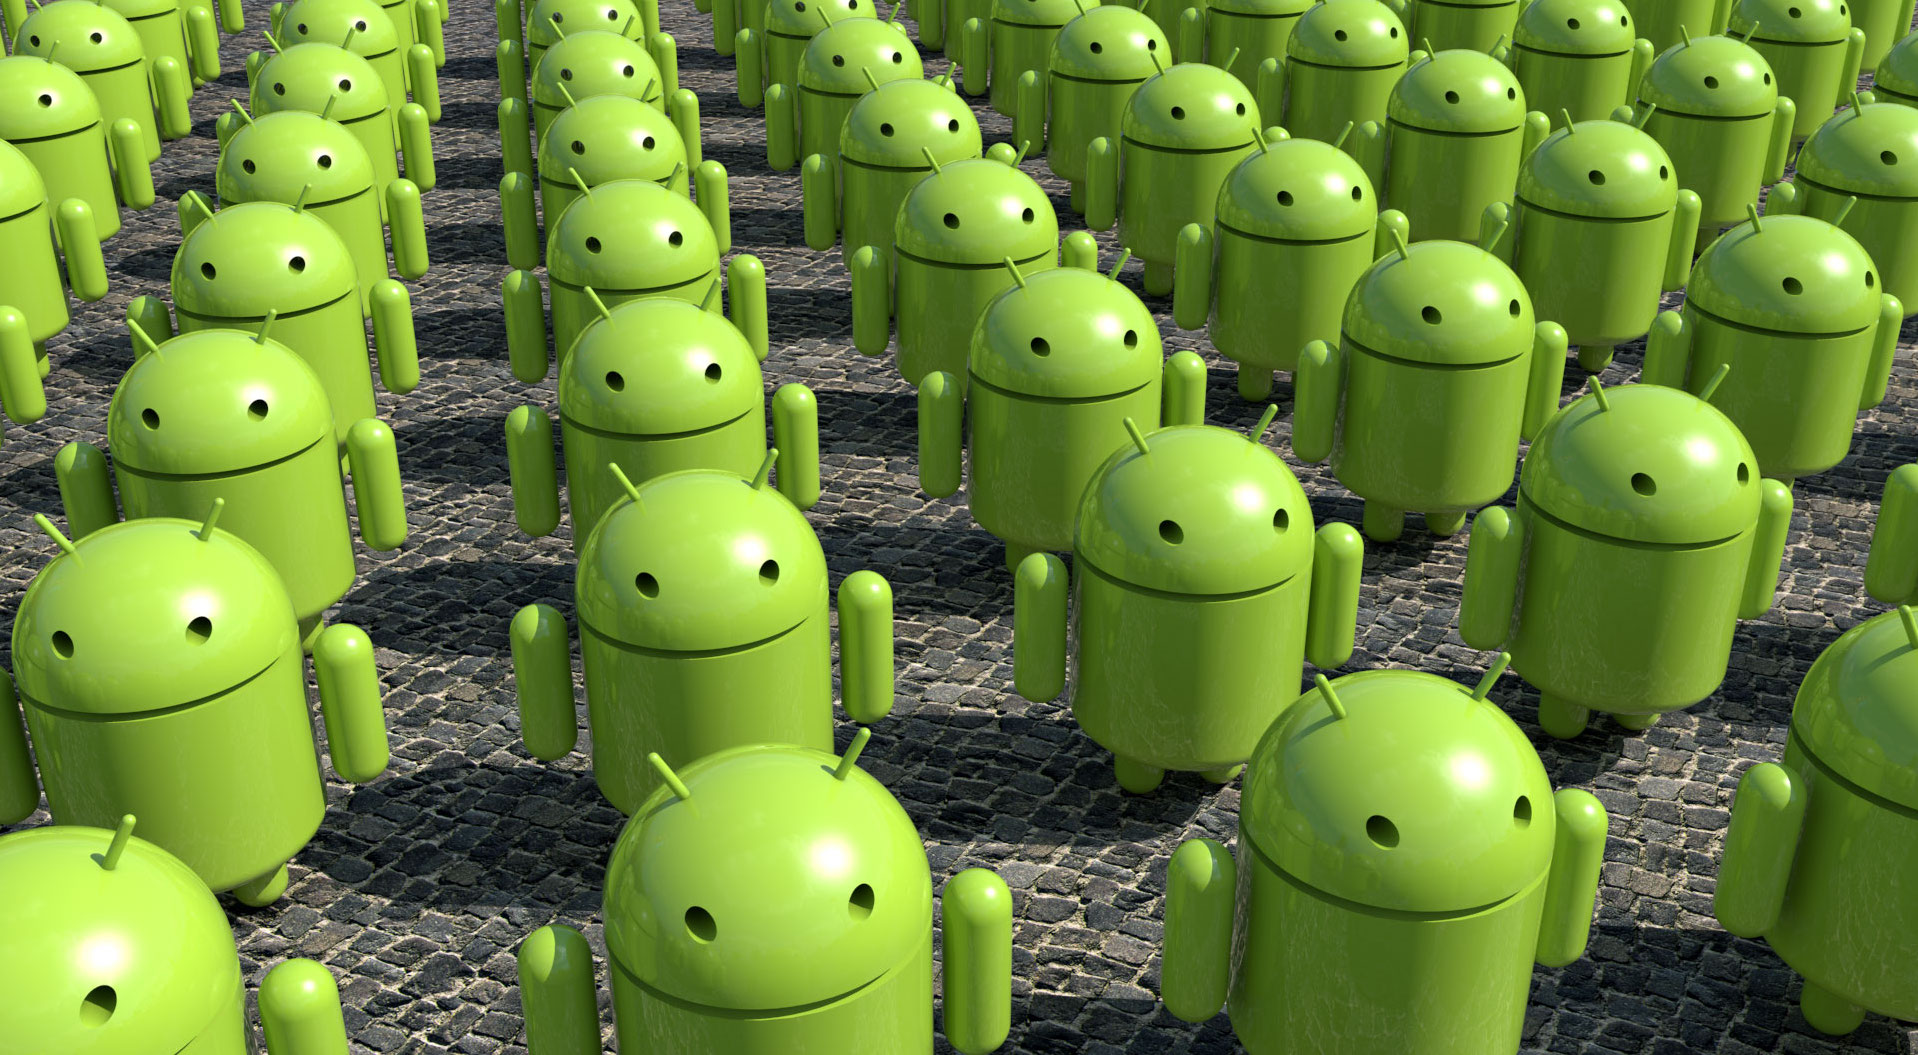 Android Duplication